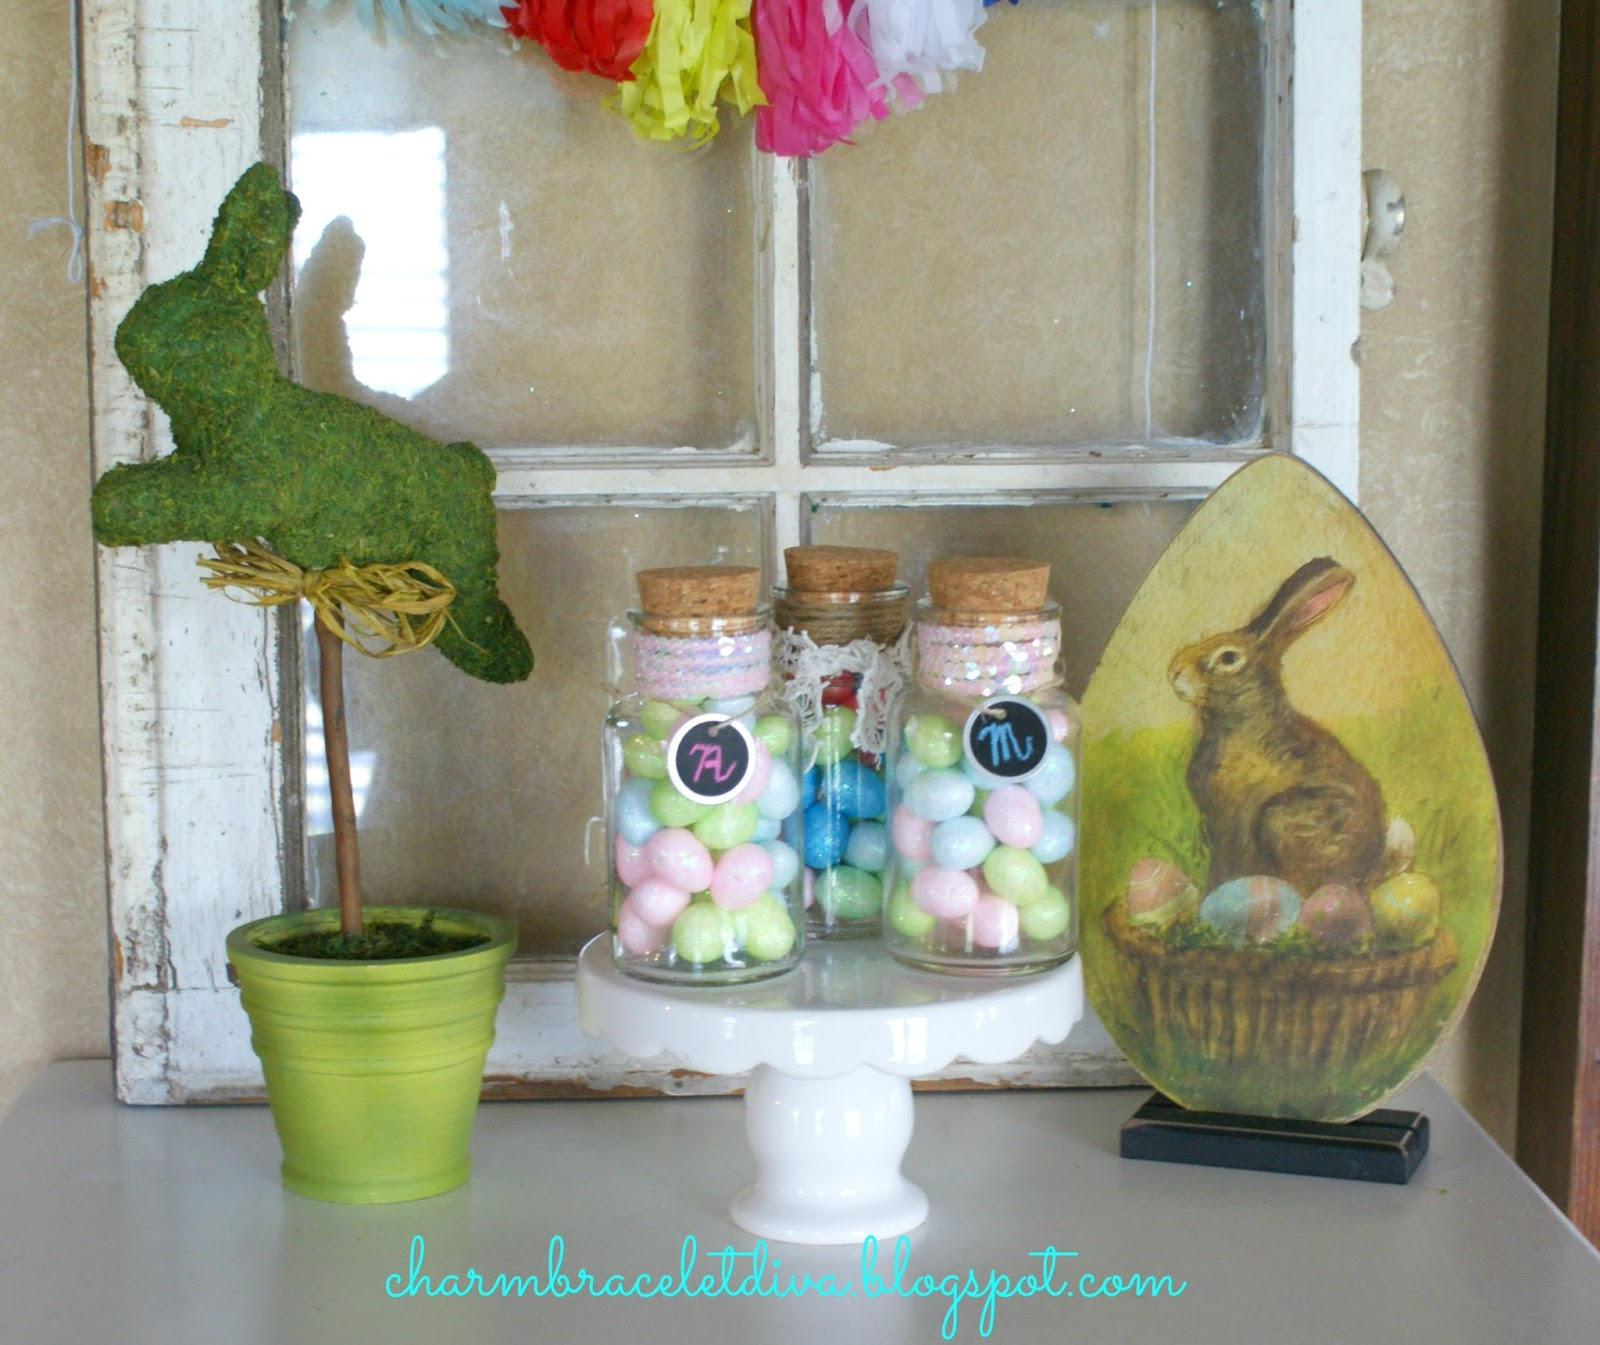 Our Hopeful Home: Vintage-Inspired Easter Candy Jars